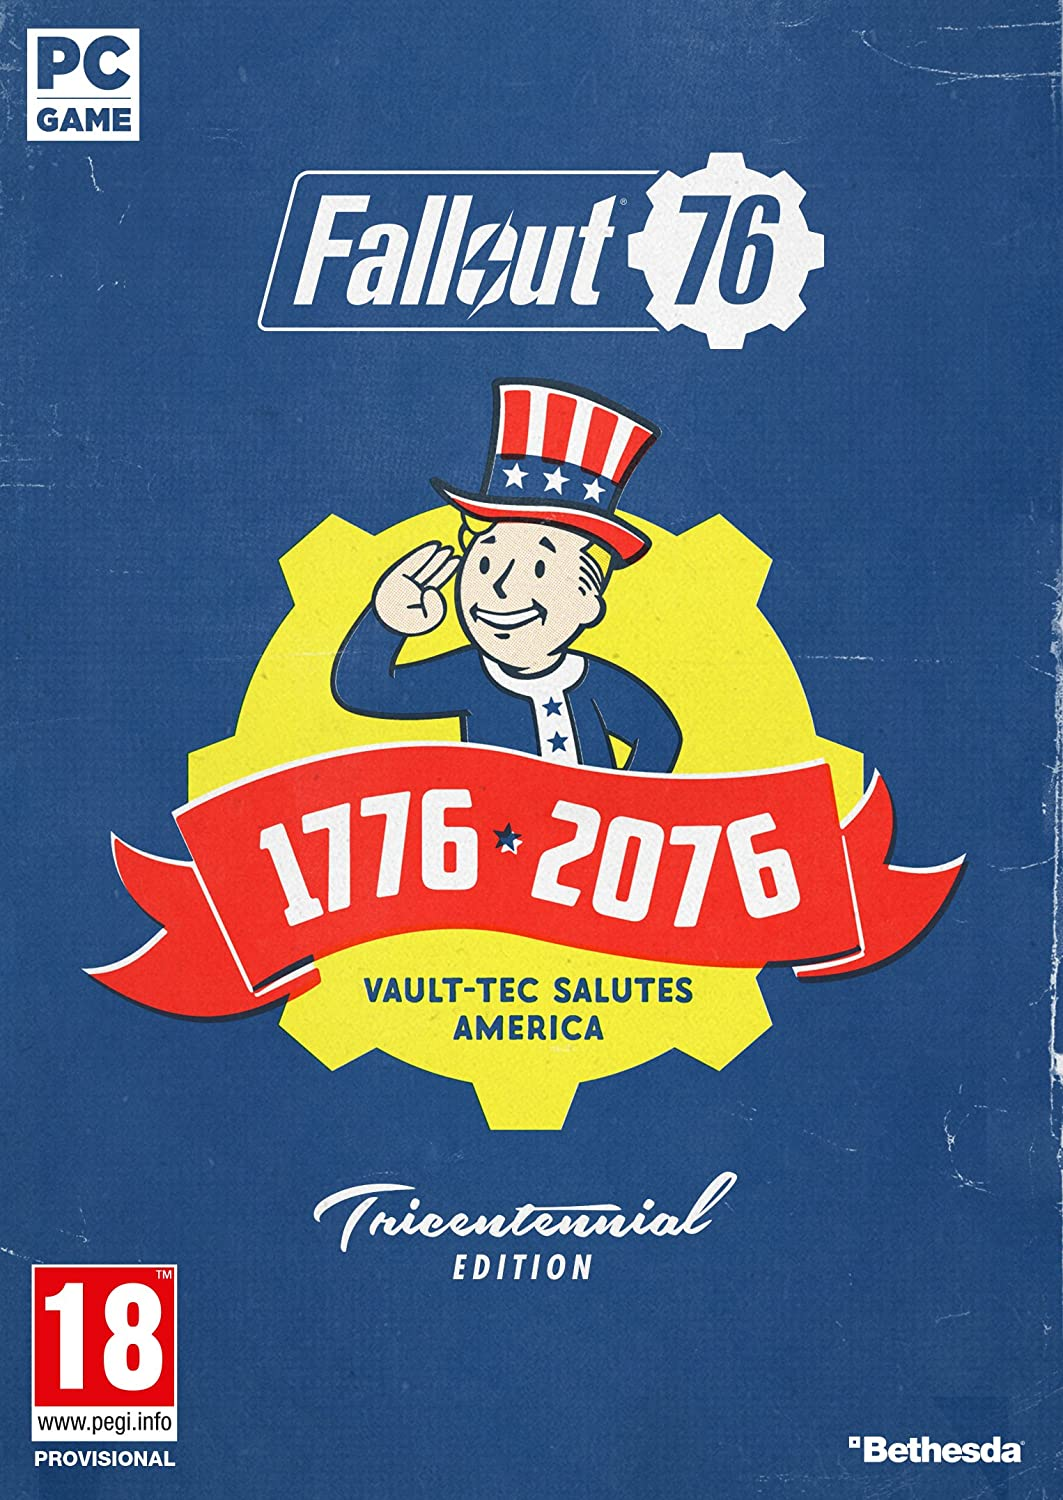 Fallout 76: Tricentennial Edition (PC Code in Box): Amazon